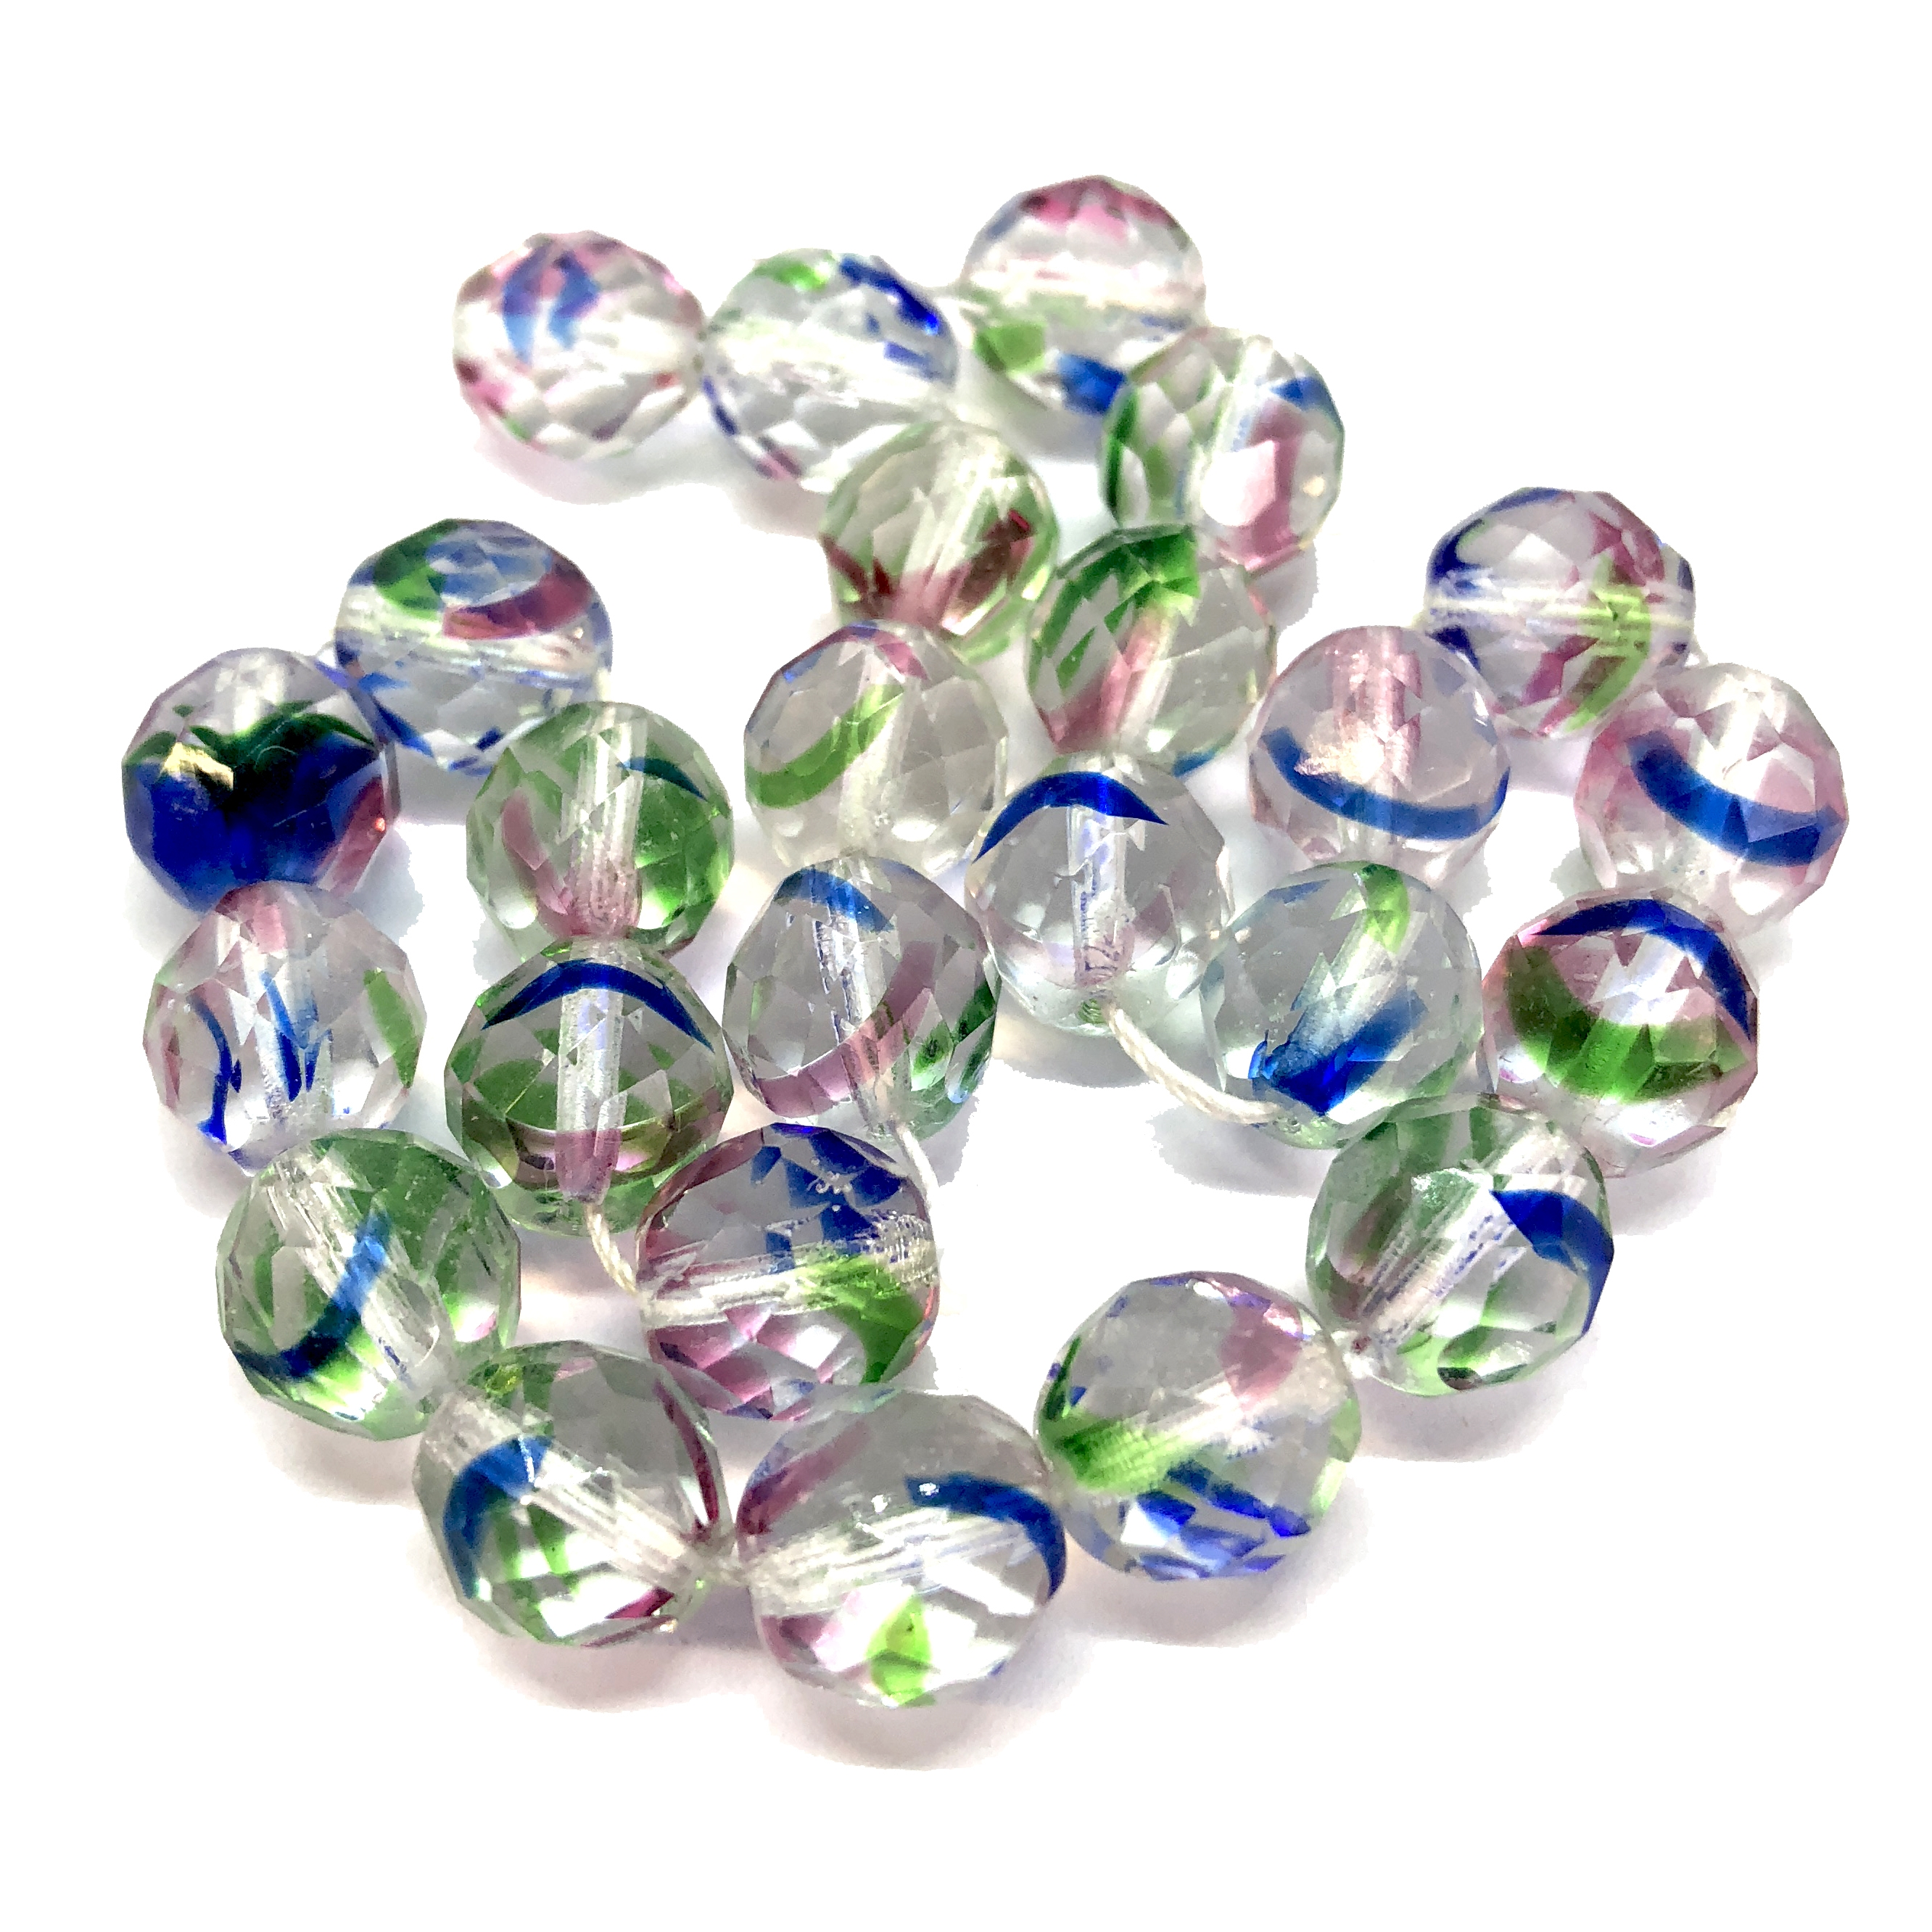 Czech glass beads, fire polished, striated, 07775, glass beads, faceted beads, beading supplies, jewelry making supplies, bsue boutiques, temp strung beads, vintage jewelry supplies, vintage beads, crystal clear, multi color